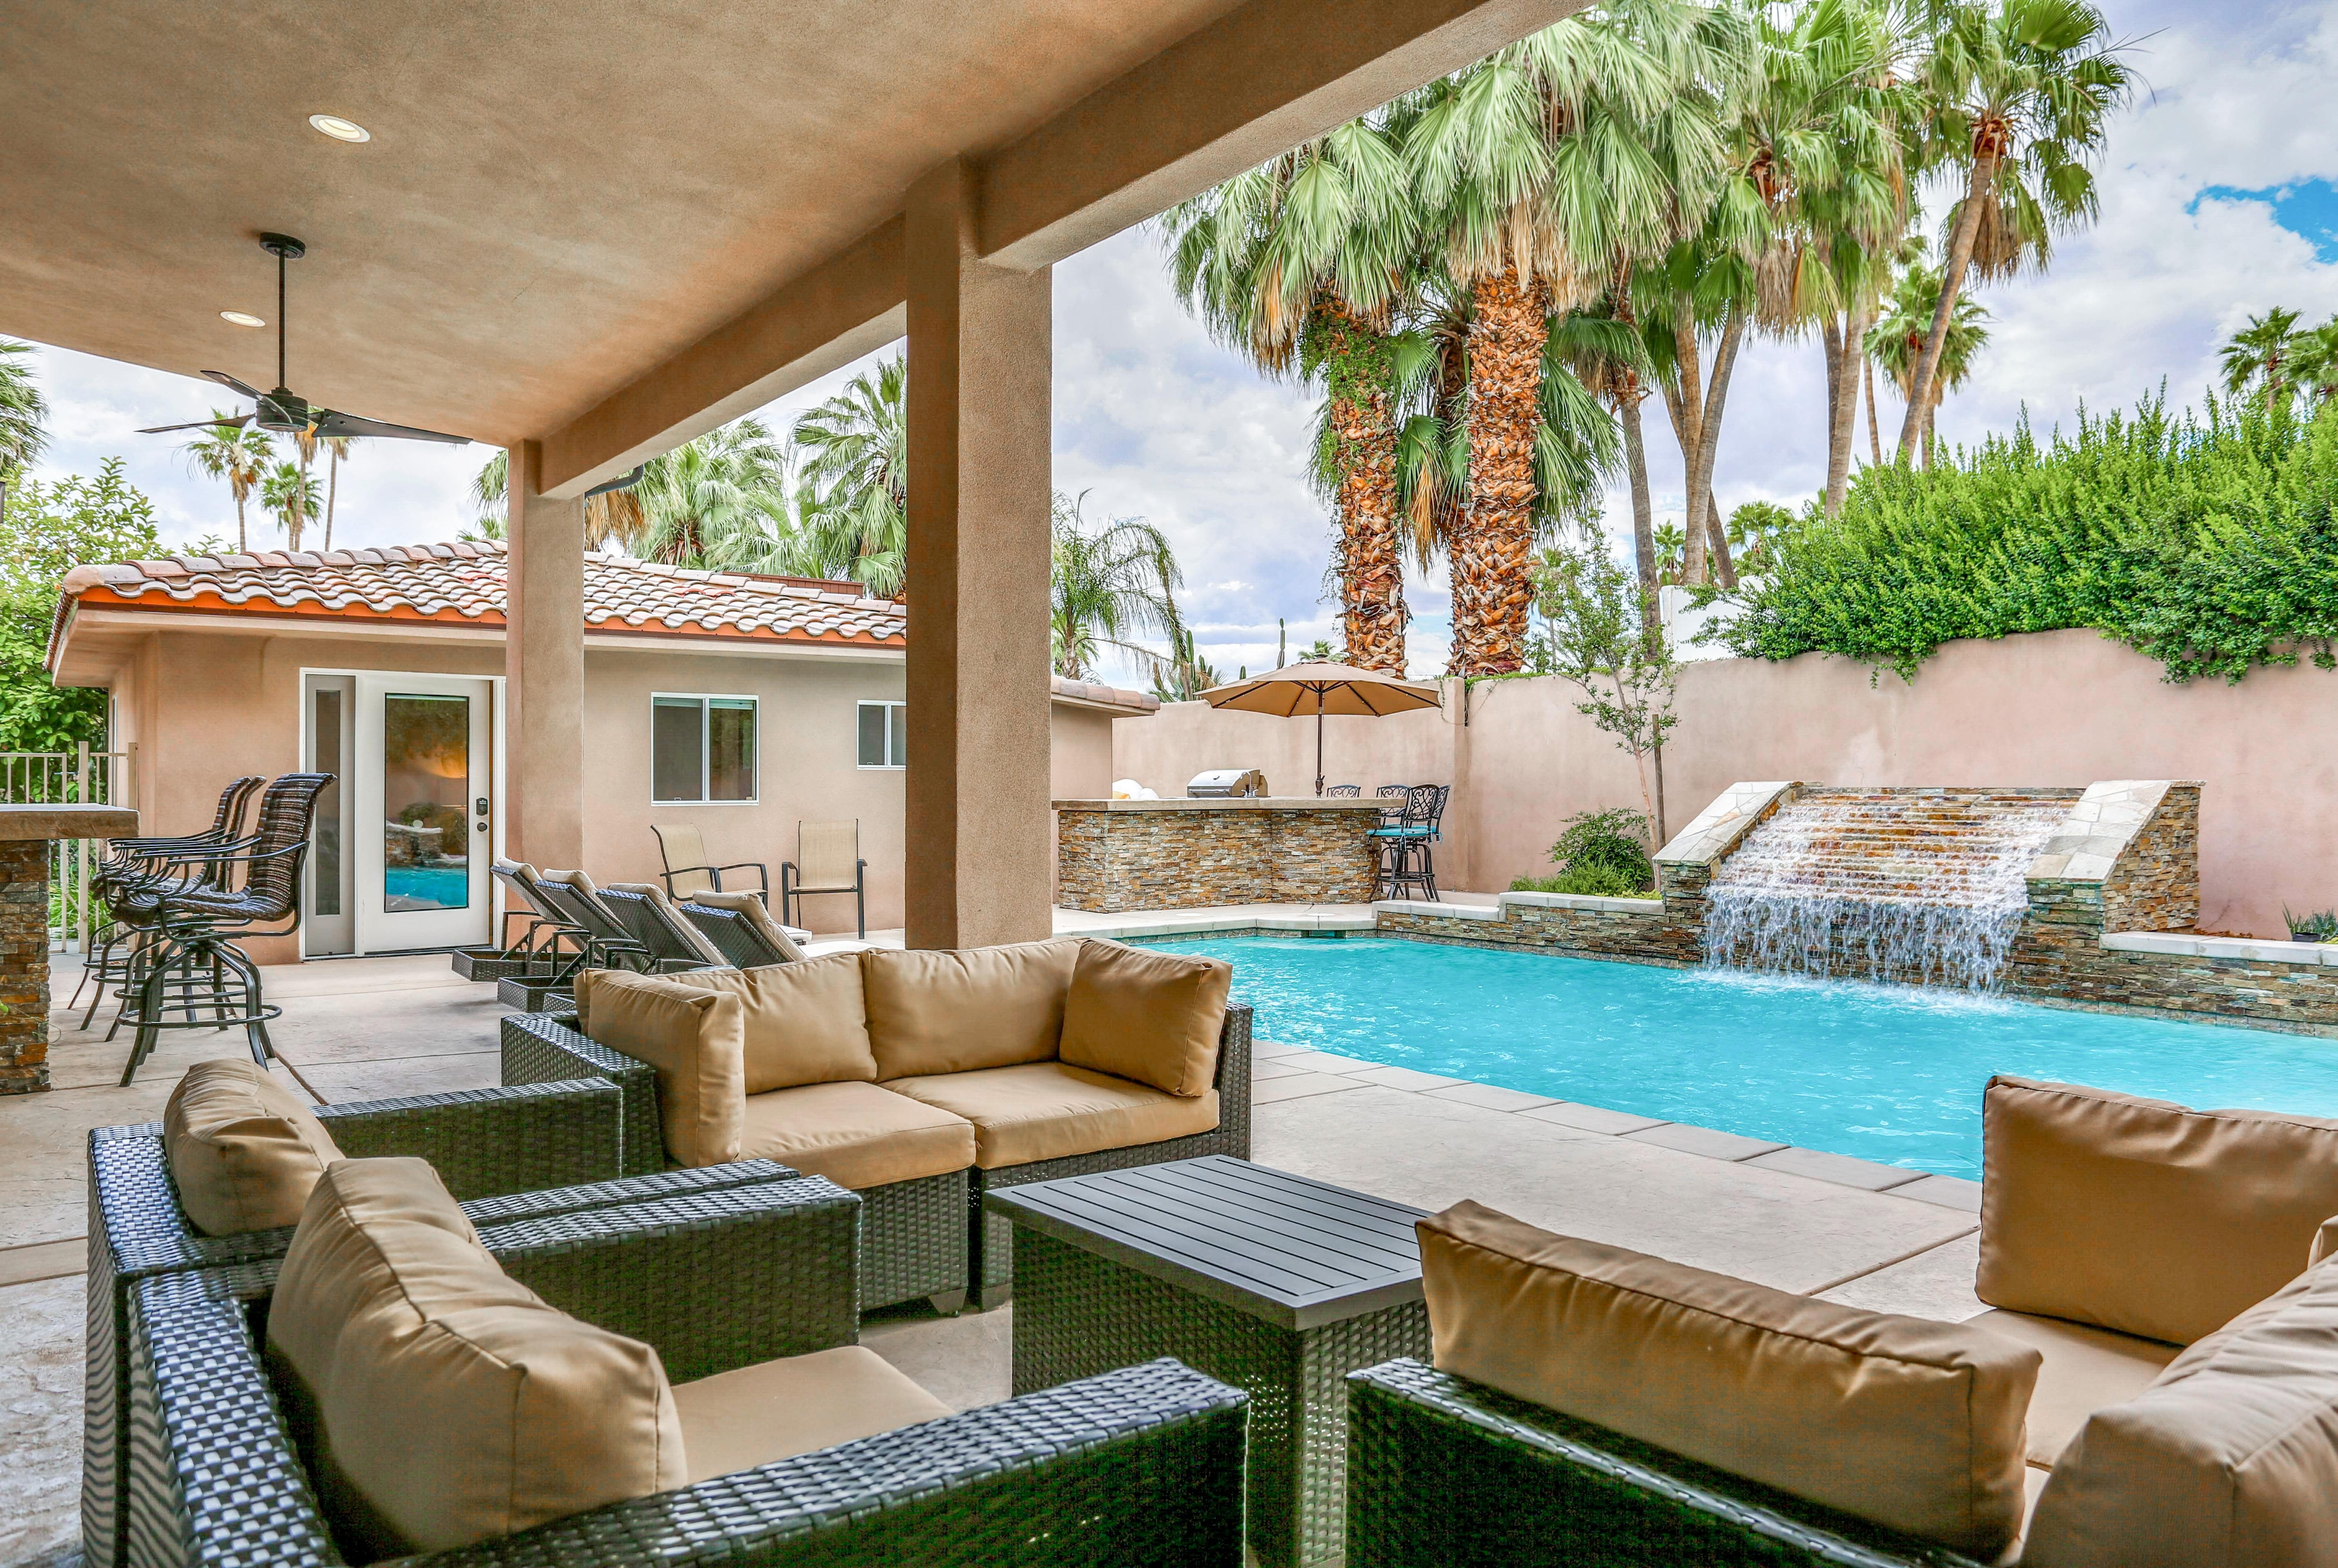 Property Image 1 - Luxurious Private Palm Springs Villa with History